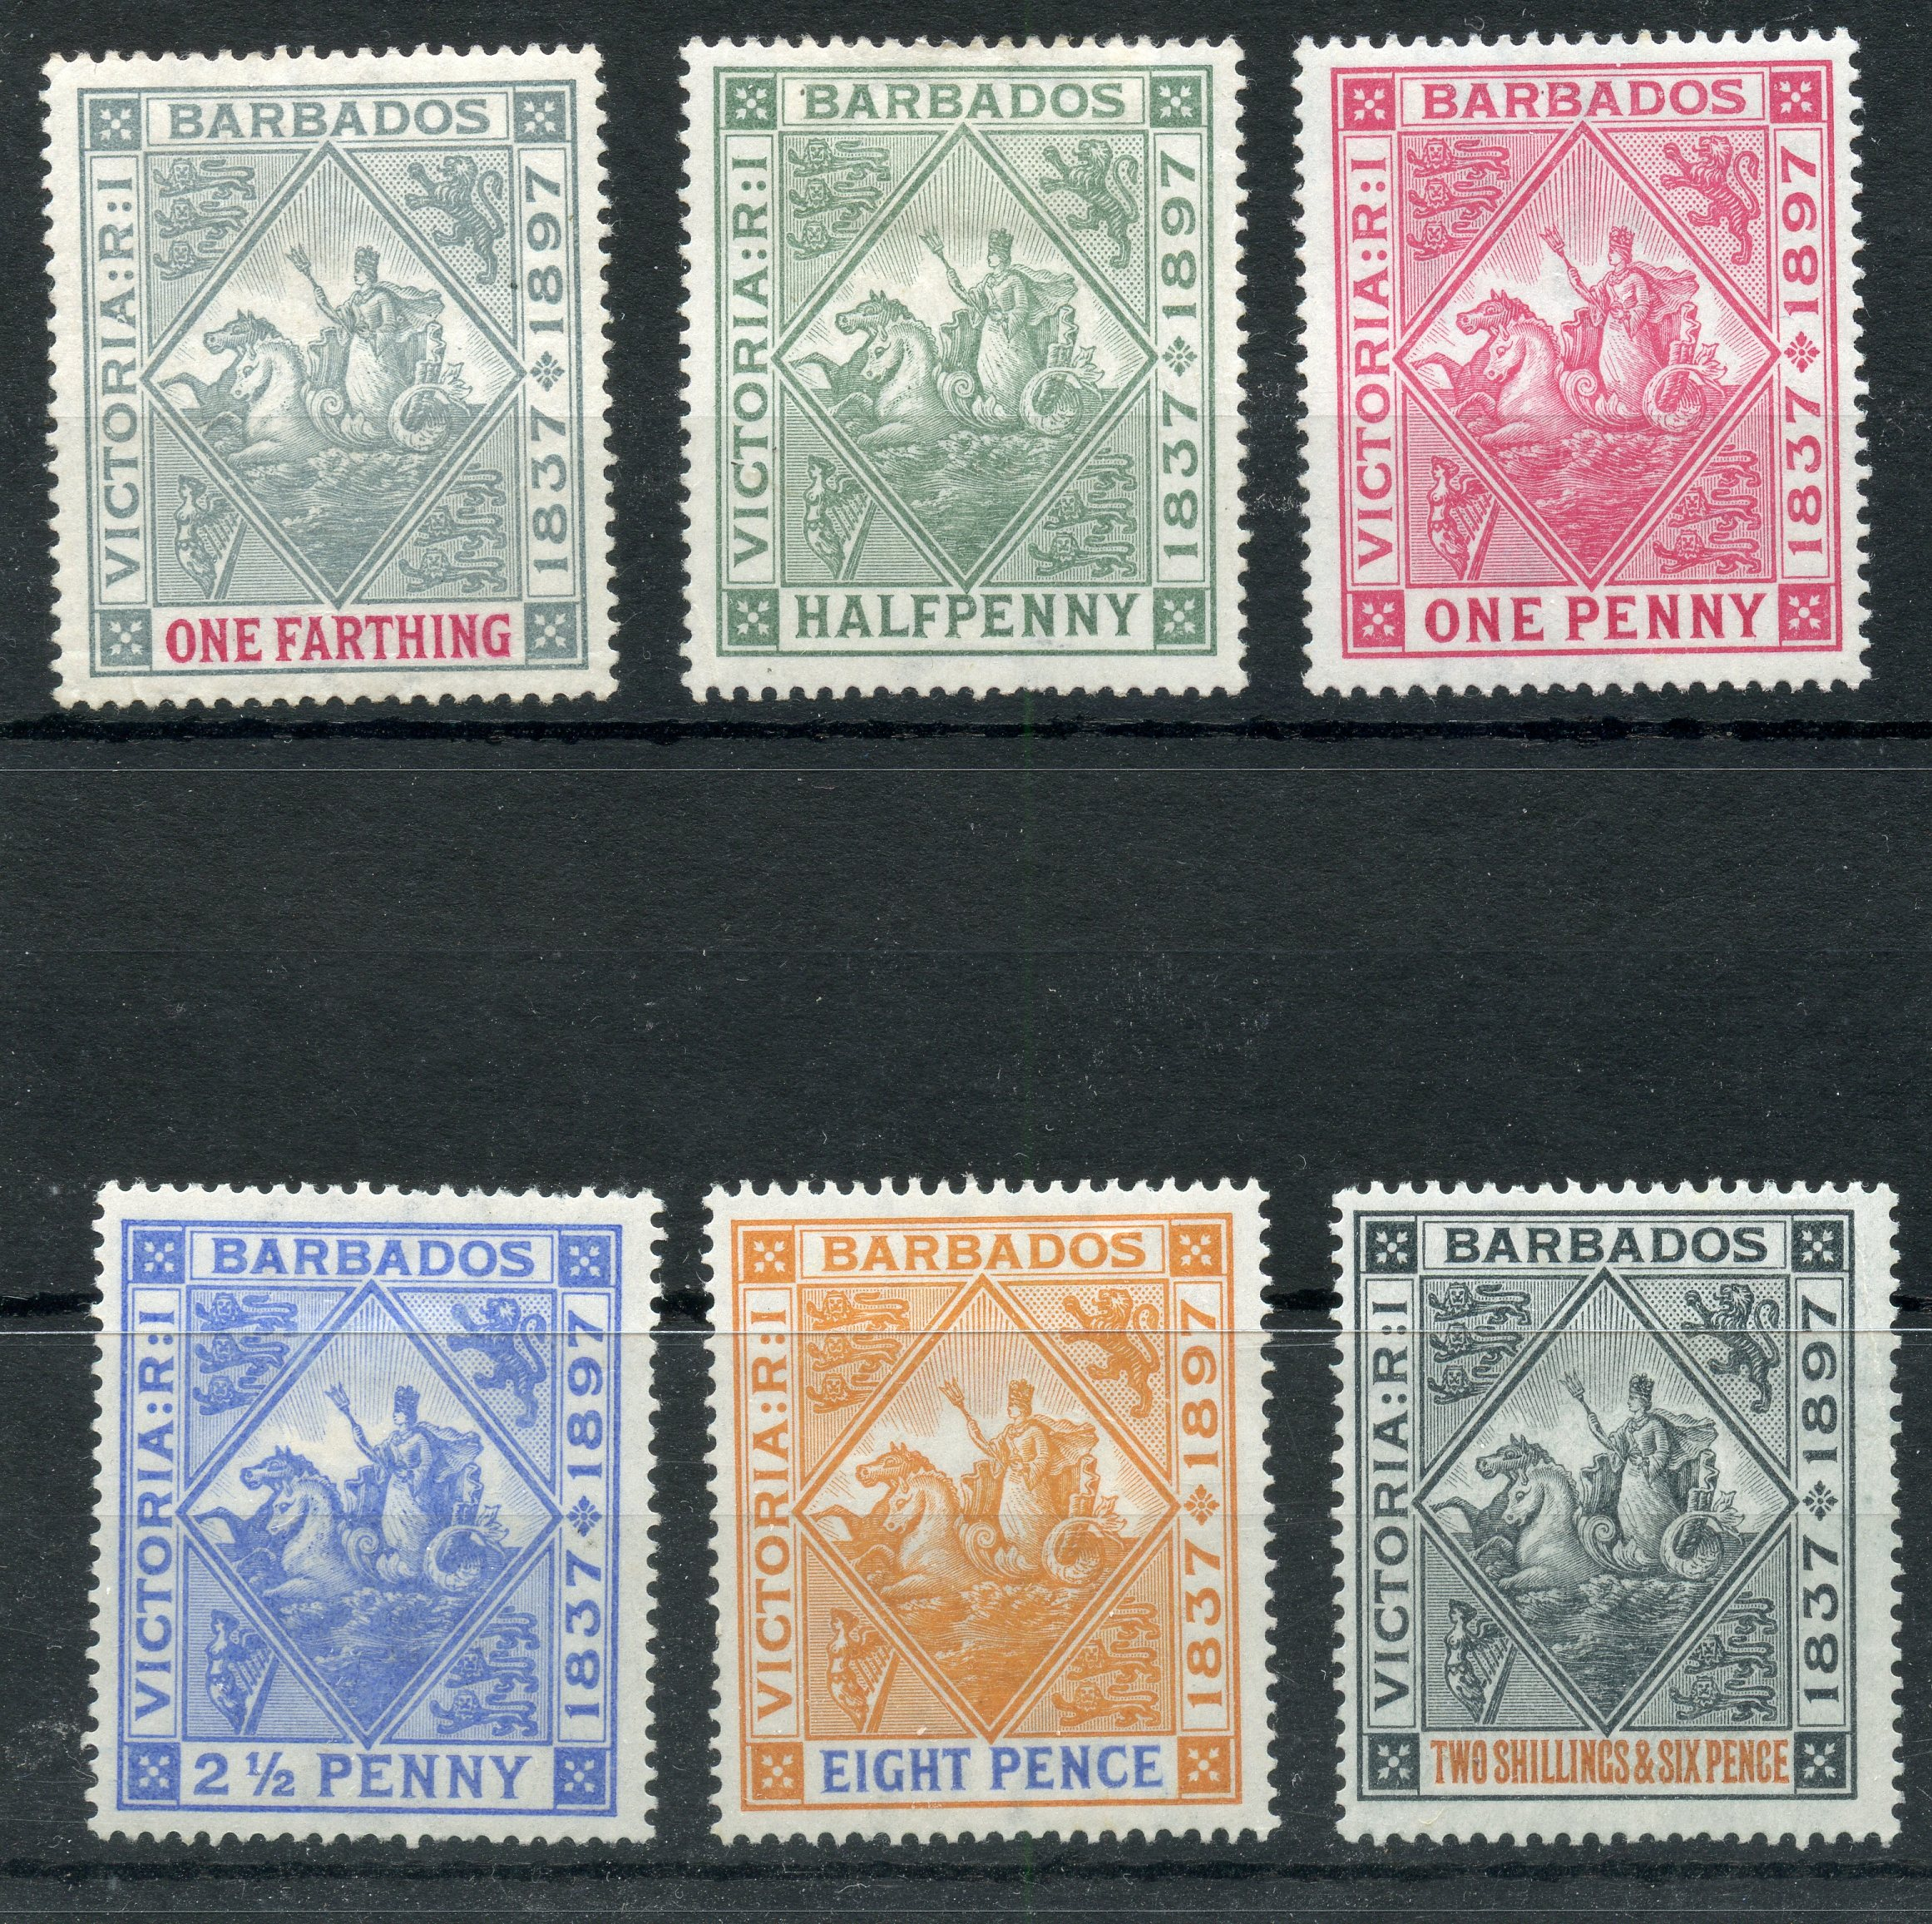 BARBADOS 1897 ¼d to 2½d, 8d and 2/6 Diamond Jubilee mint. SG btw 116 - 24. Cat £190.